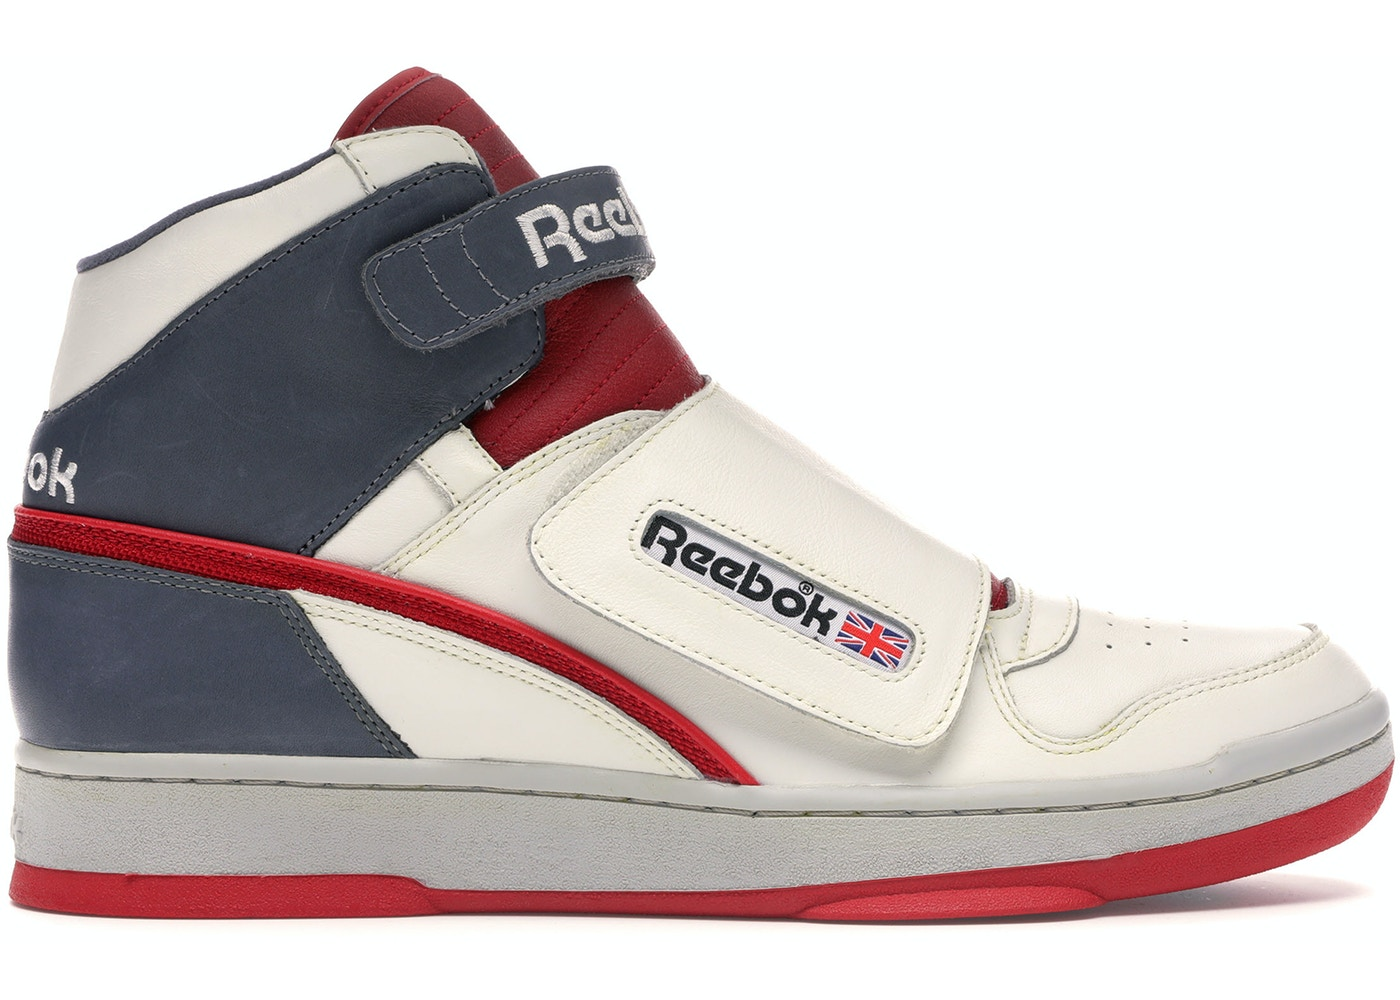 857a1b5e77f Reebok Size 7 Shoes - Average Sale Price